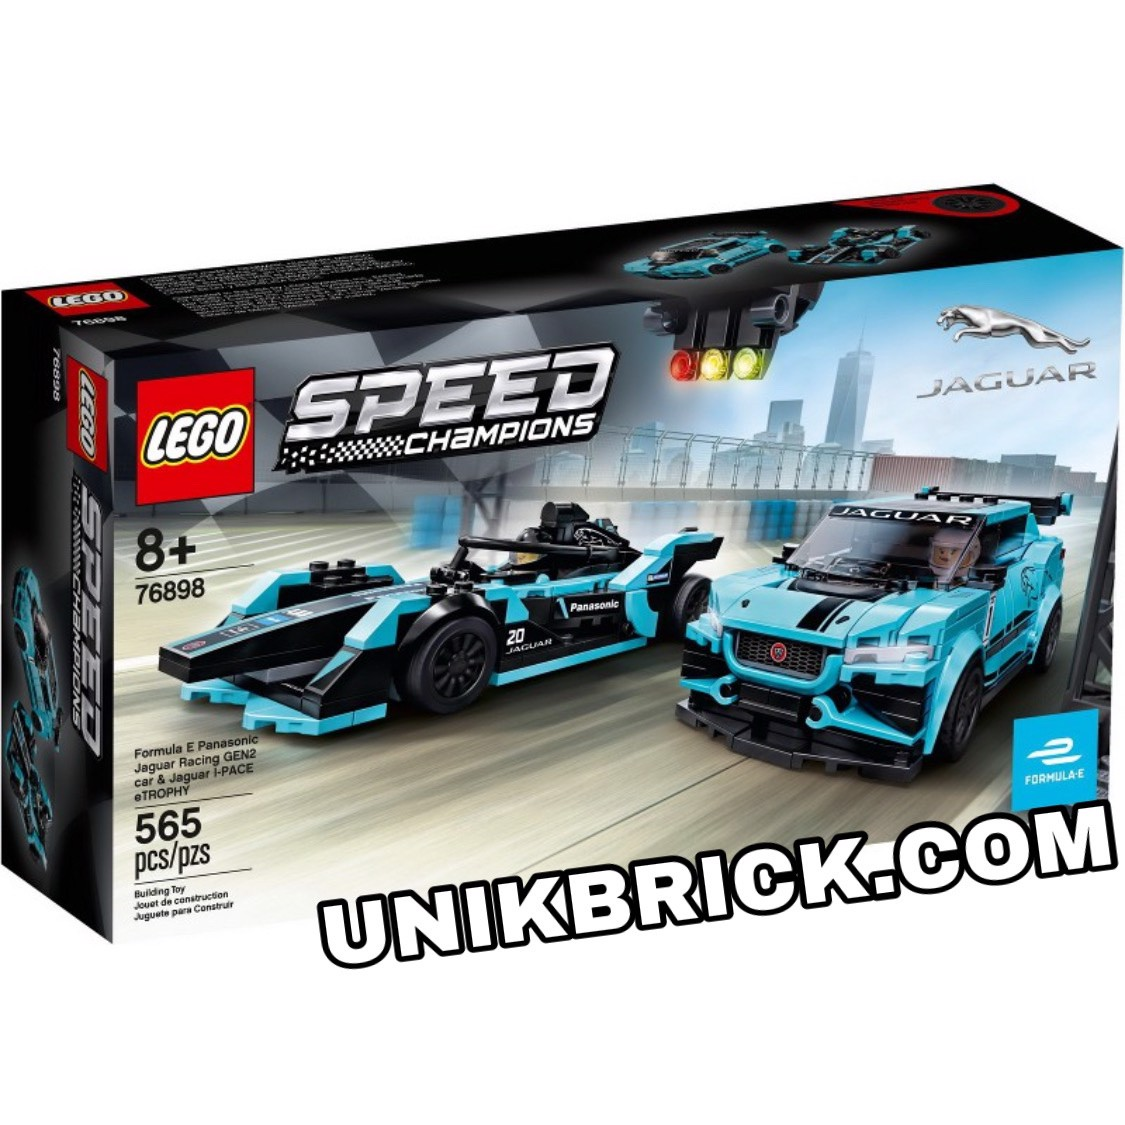 [CÓ HÀNG] LEGO Speed Champions 76898 Formula E Panasonic Jaguar Racing GEN2 car & Jaguar I-PACE eTROPHY